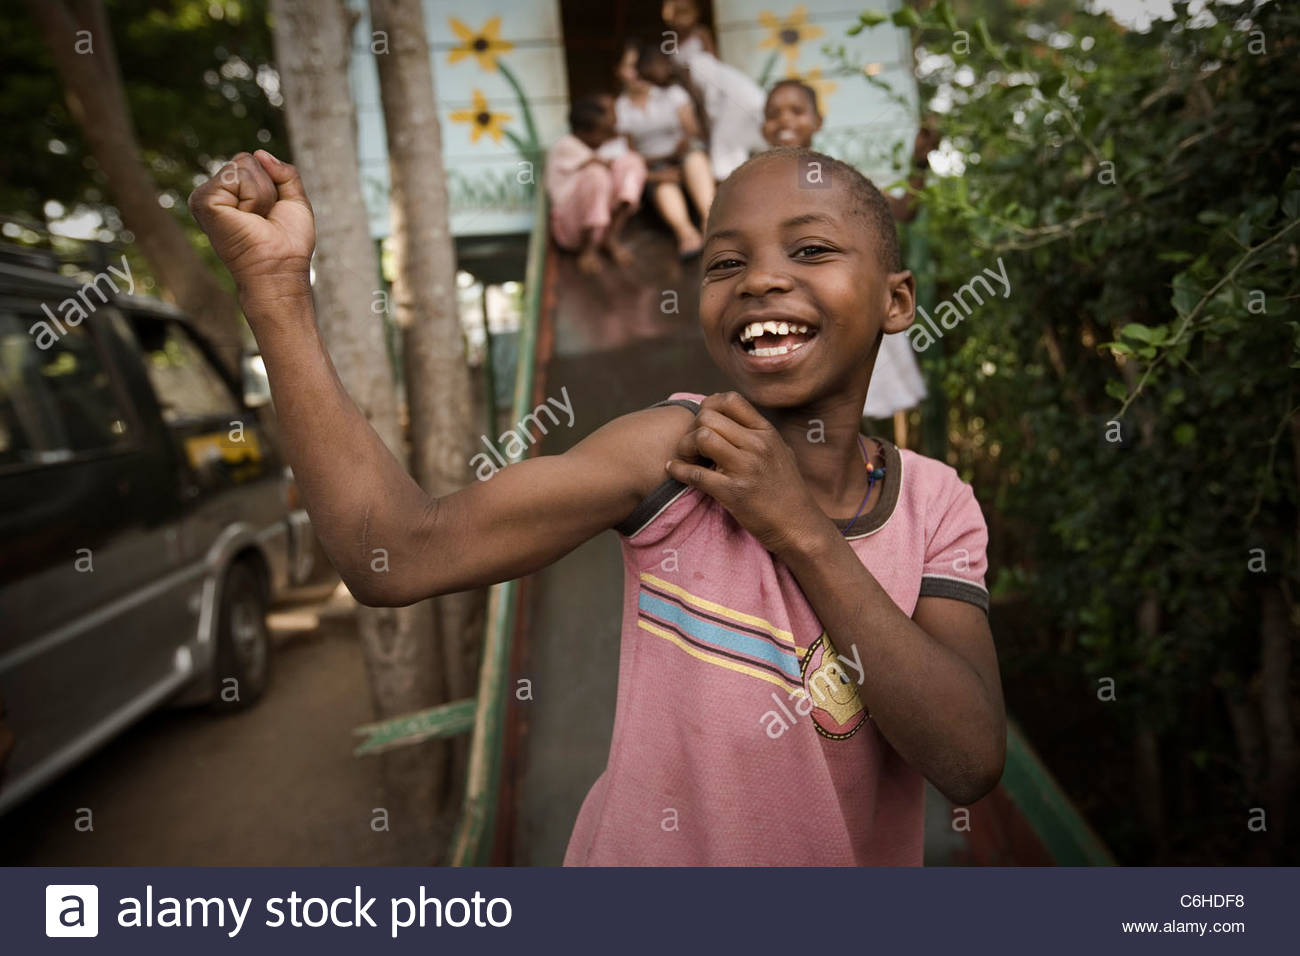 Young boy laughing and showing off his biceps - Stock Image